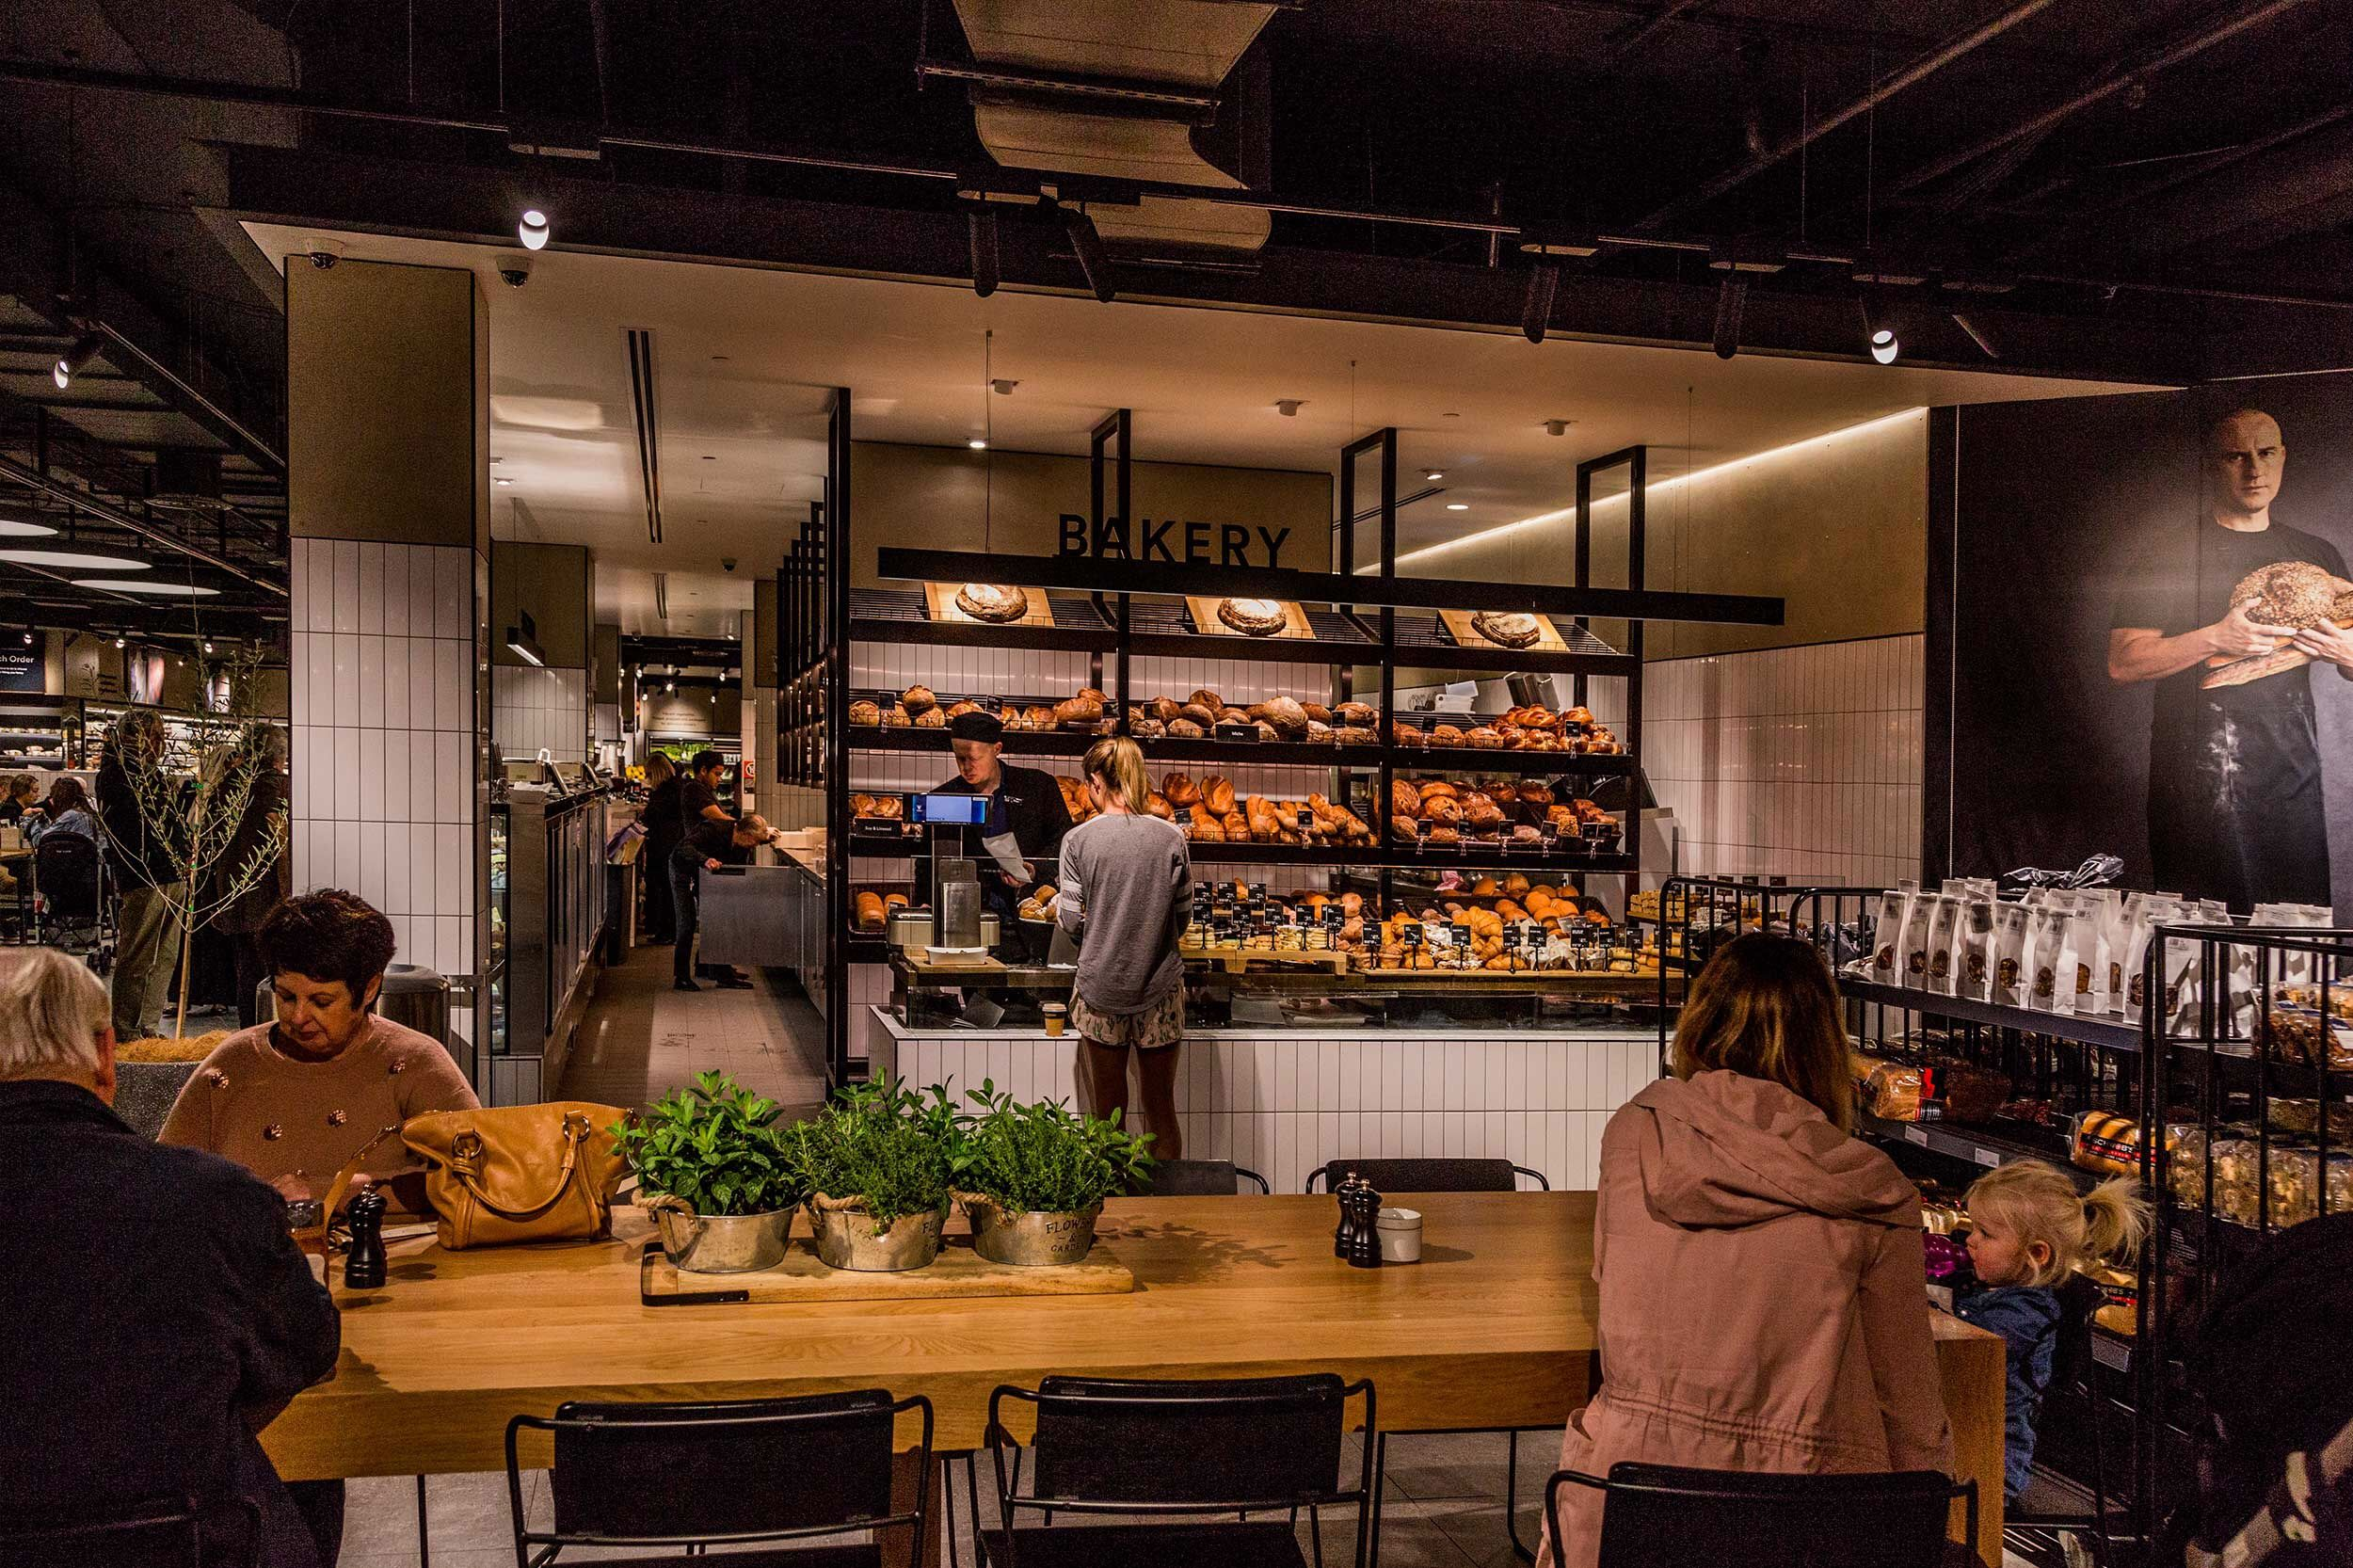 Pin by Alex zhang on Commercial Space Food hall, David